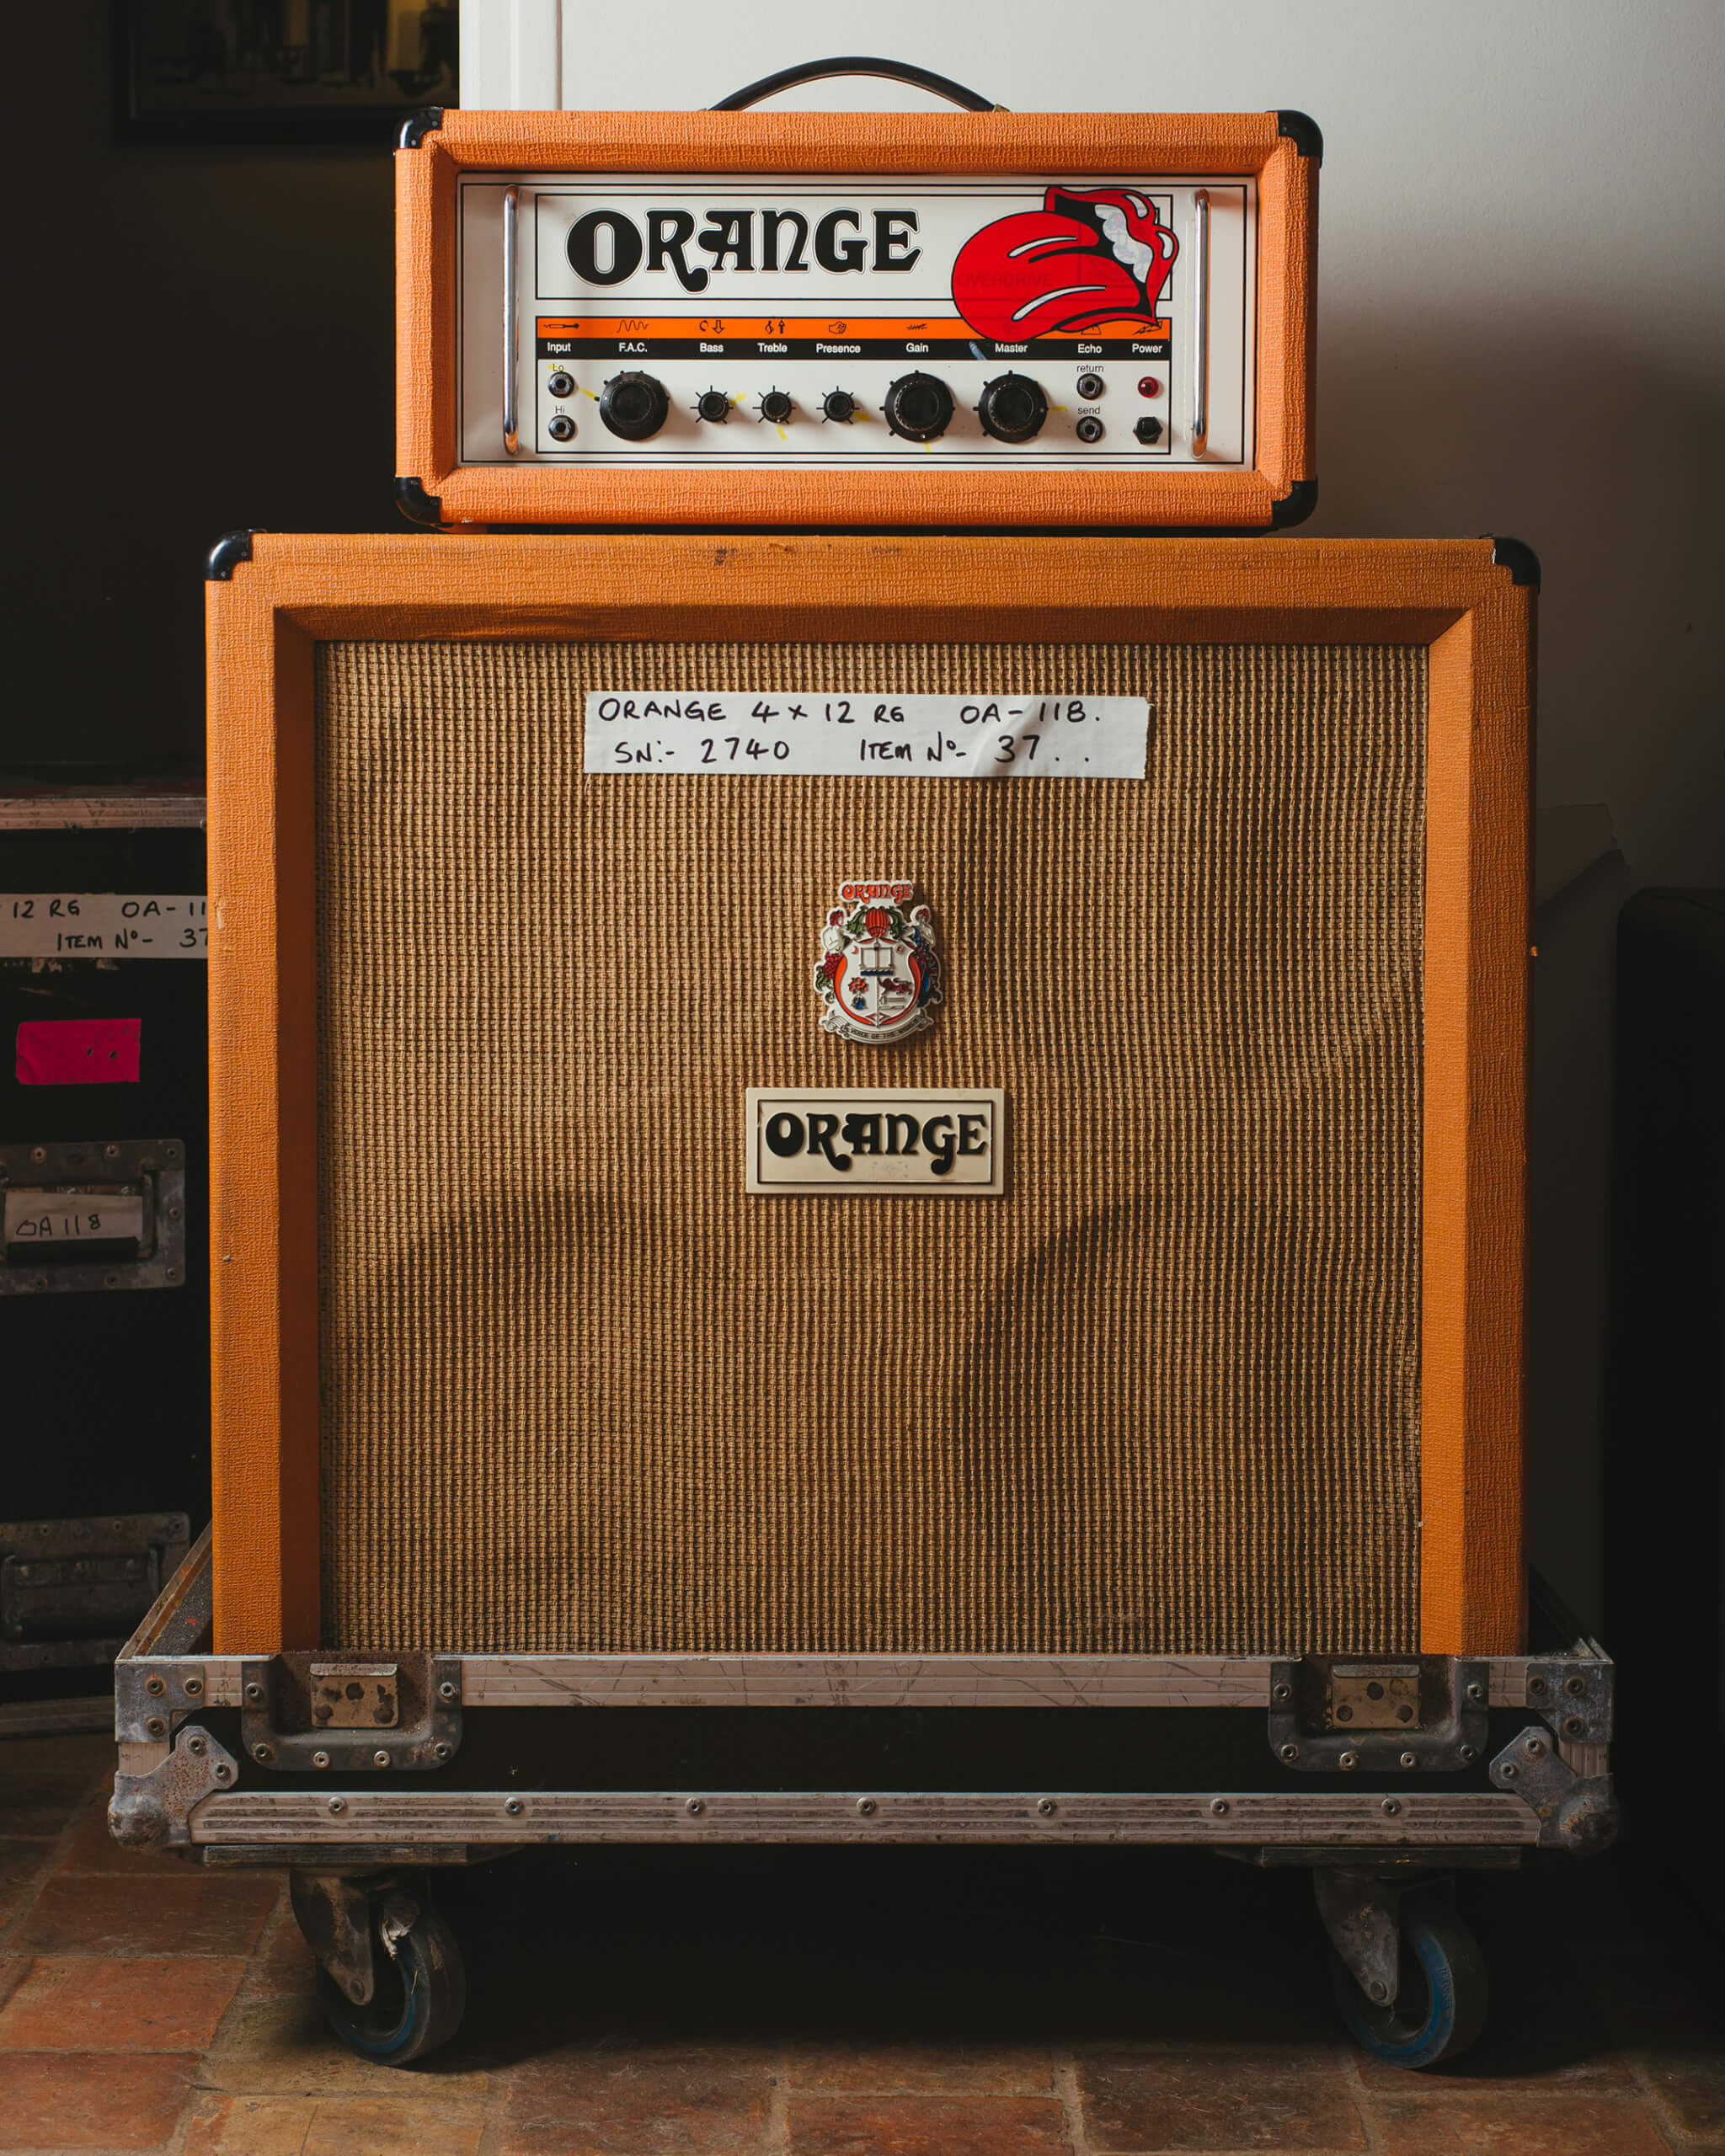 This Orange halfstack was owned by Noel Gallagher